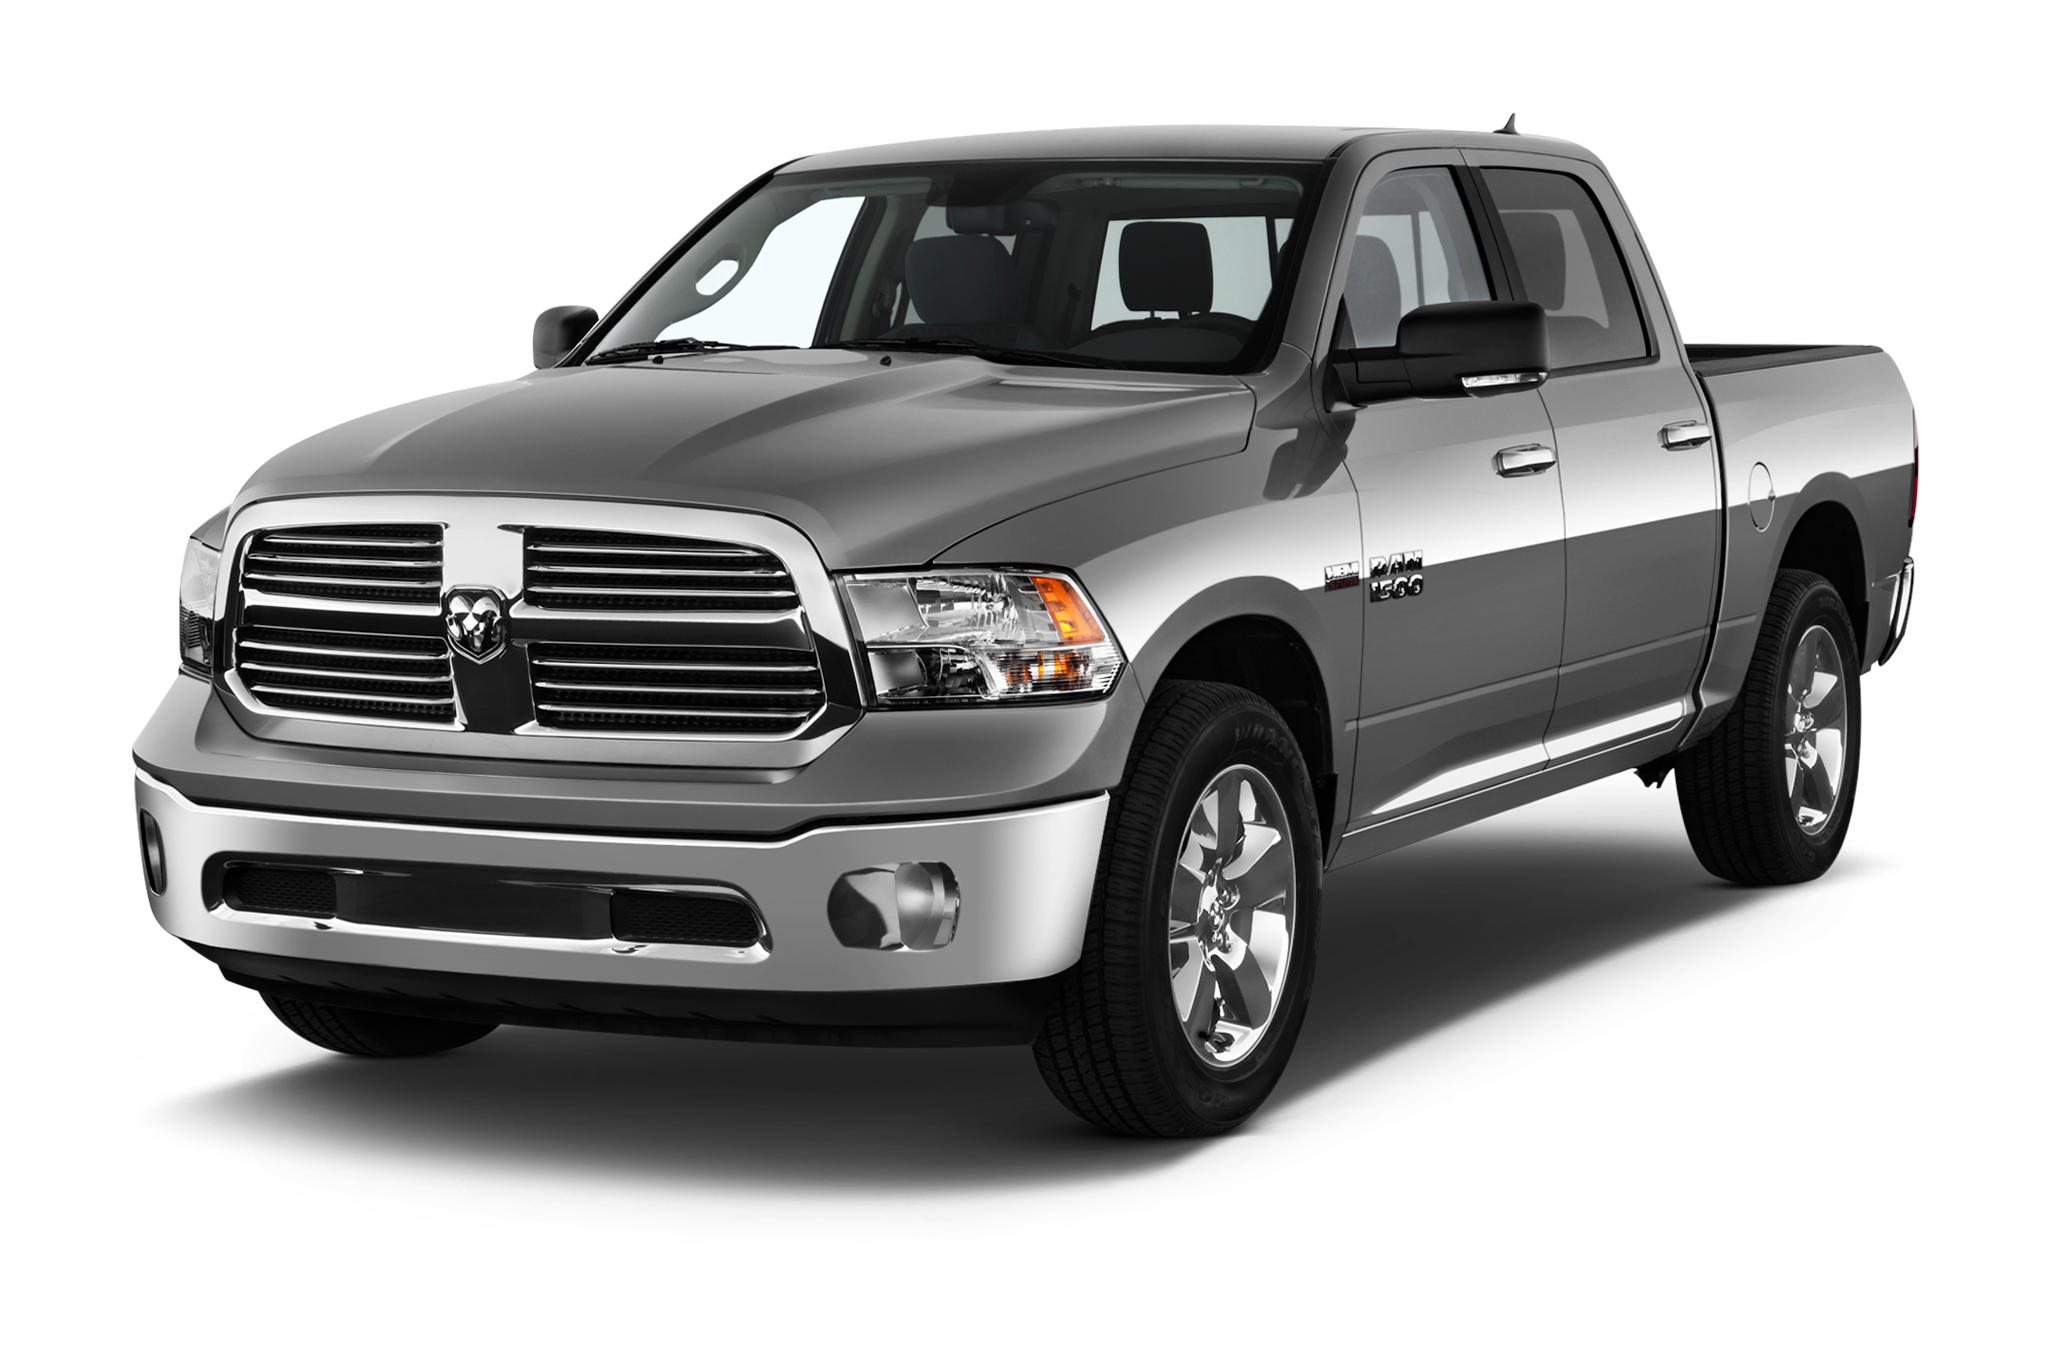 2017 dodge ram sport crew cab best new cars for 2018. Black Bedroom Furniture Sets. Home Design Ideas